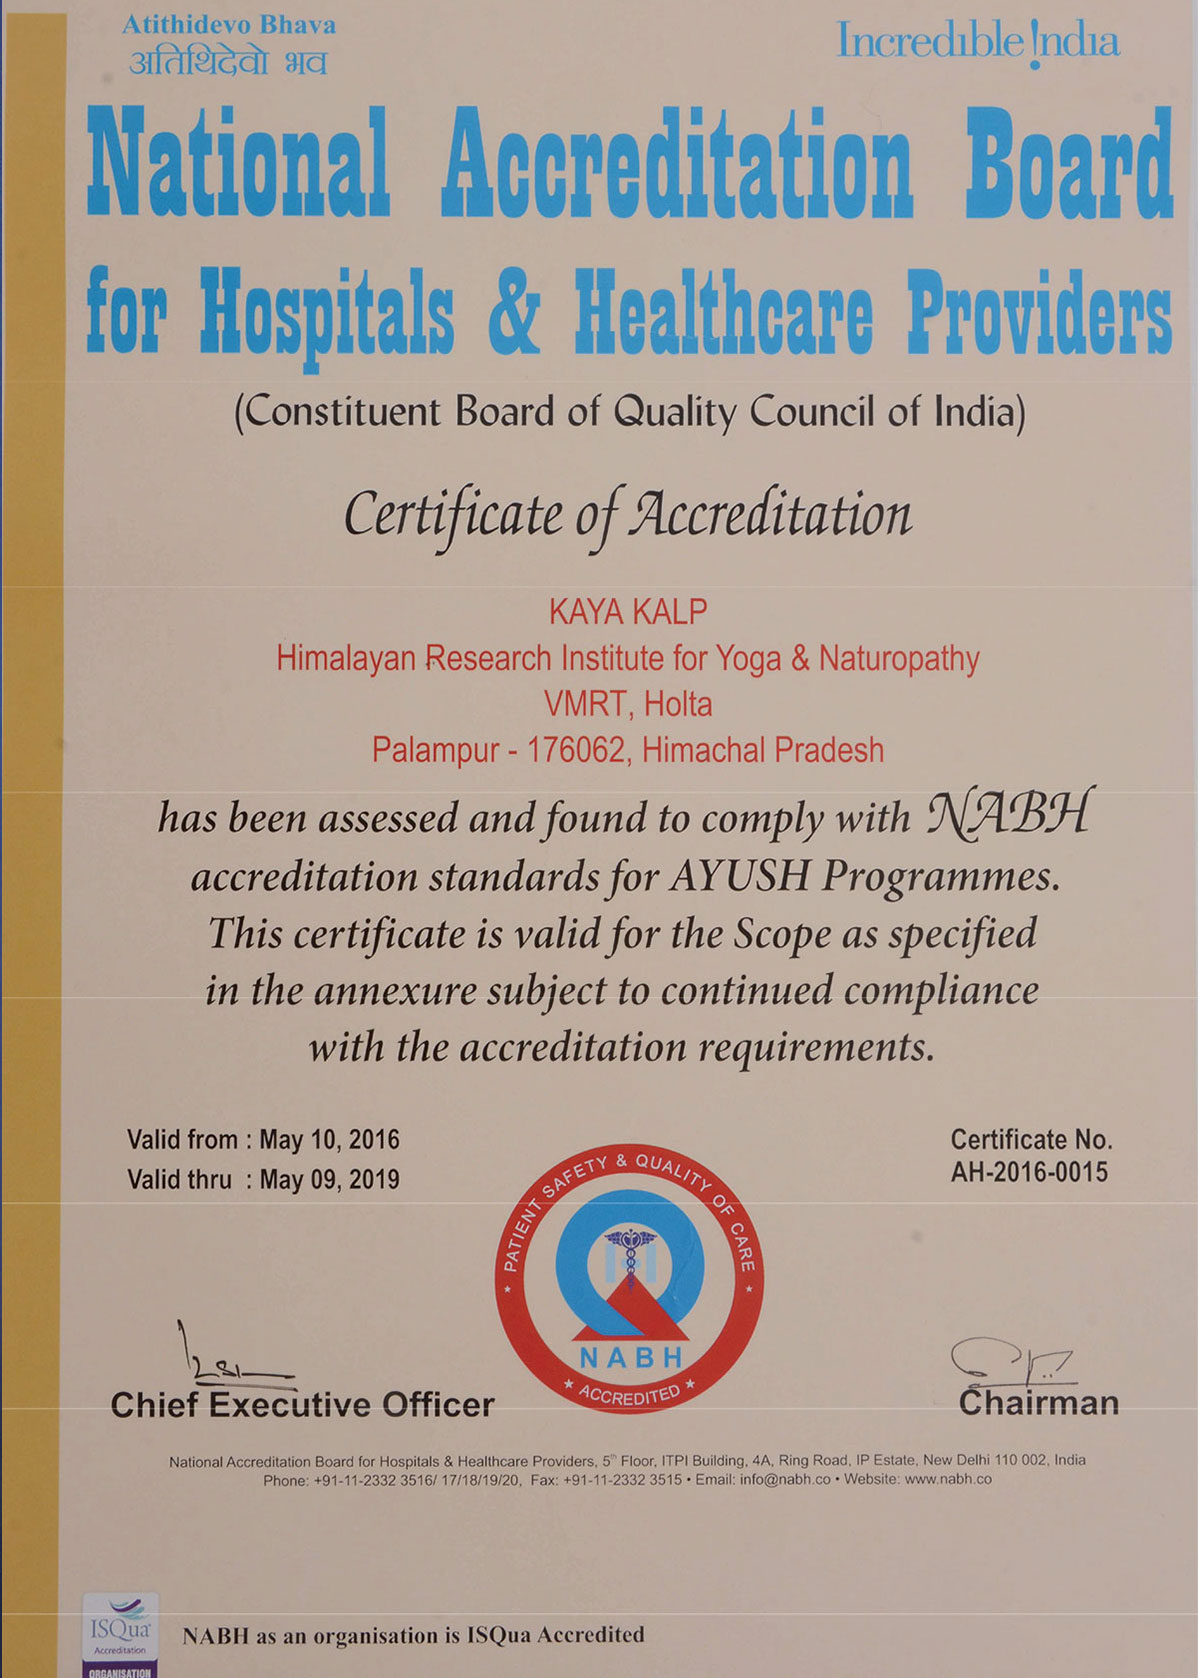 India's 1st NABH Accredited Yoga-Naturopathy Hospital and Himachal Pradesh's 1st and only AYUSH Accredited Hospital by NABH